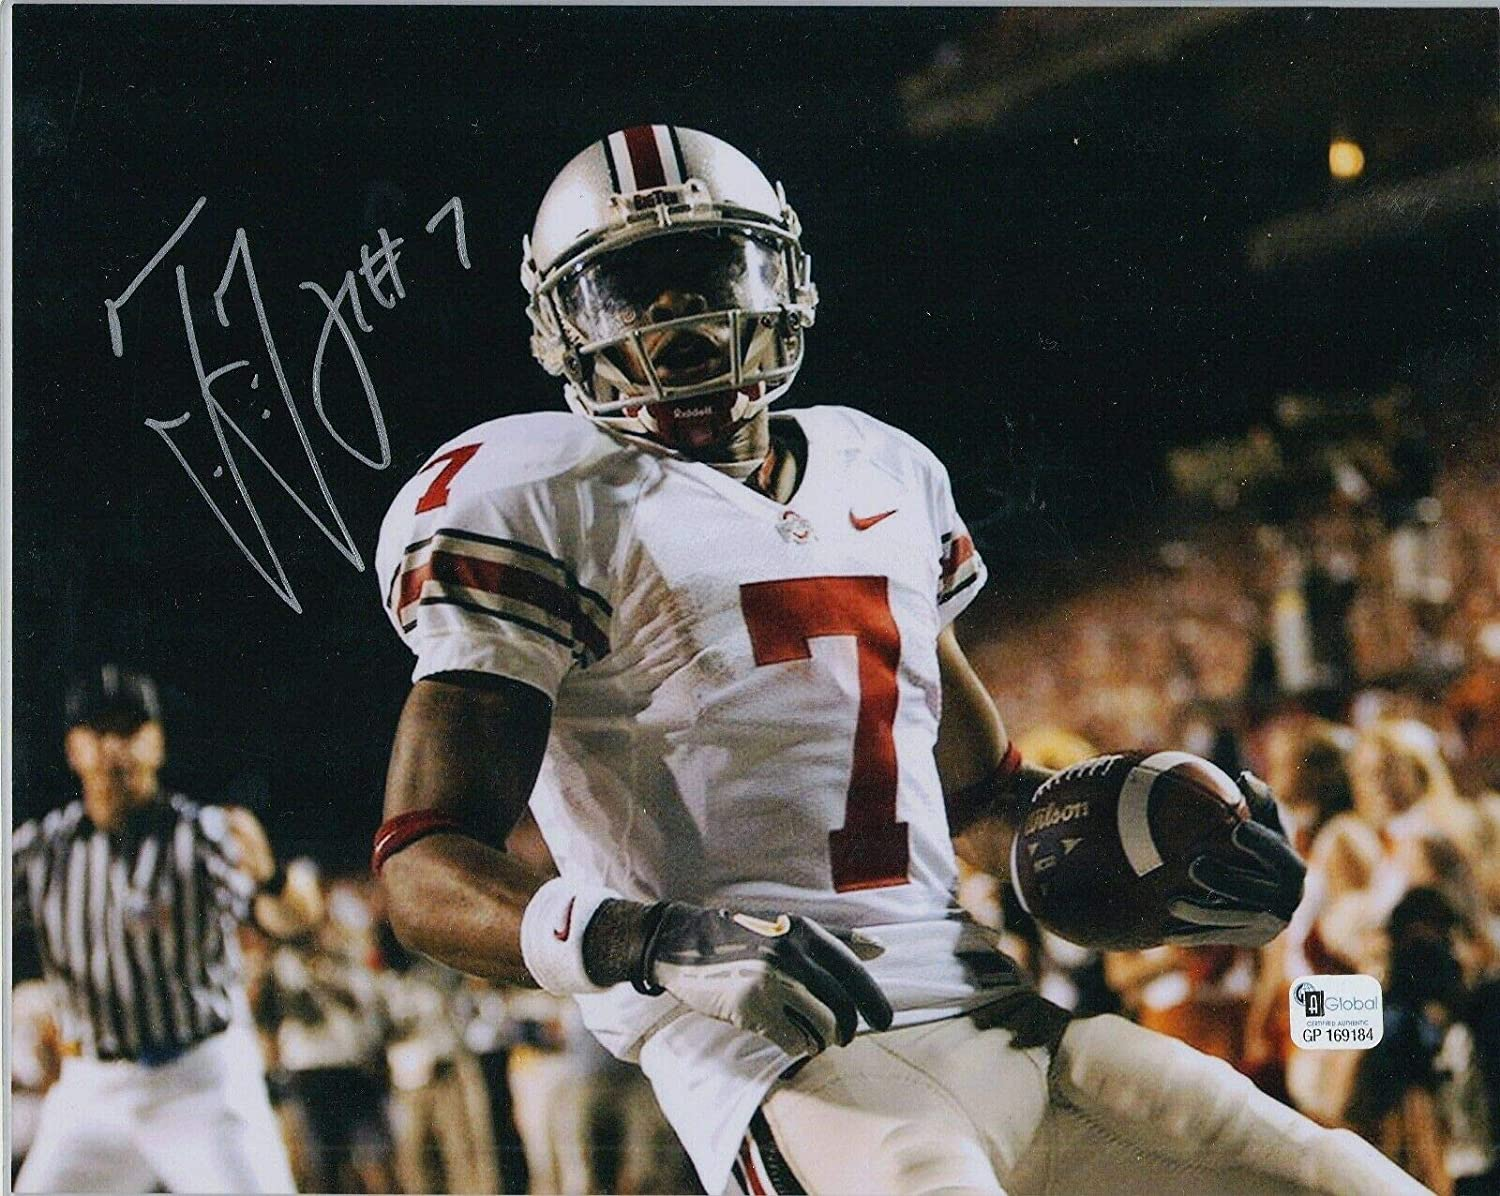 Ted Ginn Jr Ohio State Buckeyes Signed 8x10 White Jersey Photo